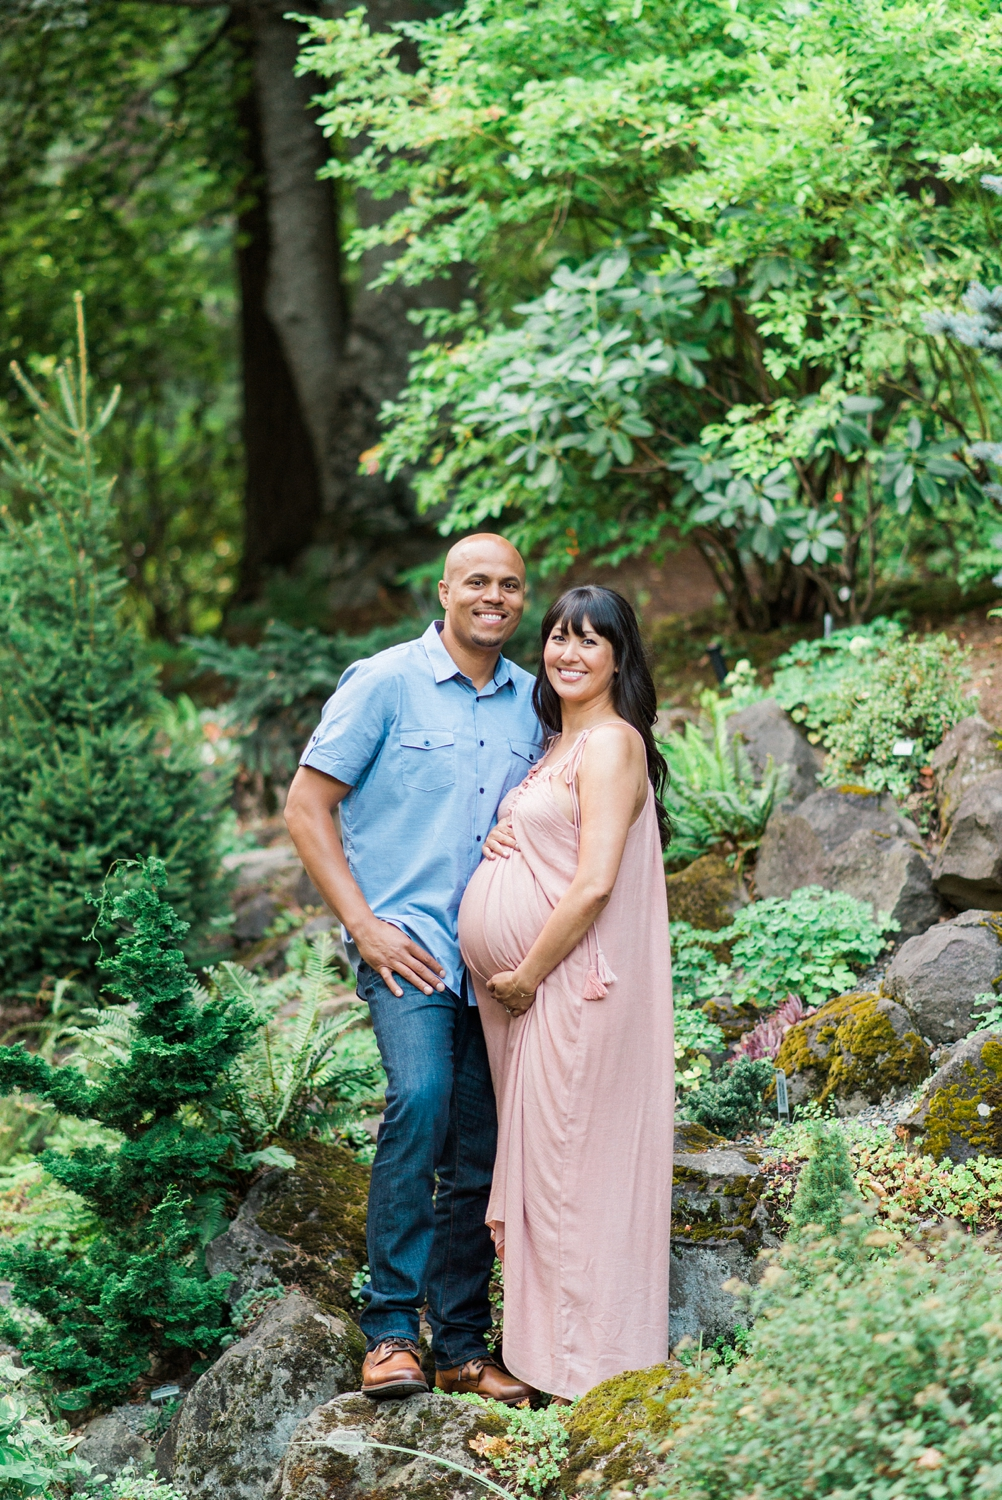 portland-maternity-photography-pittock-mansion-shelley-marie-photo-129_cr.jpg